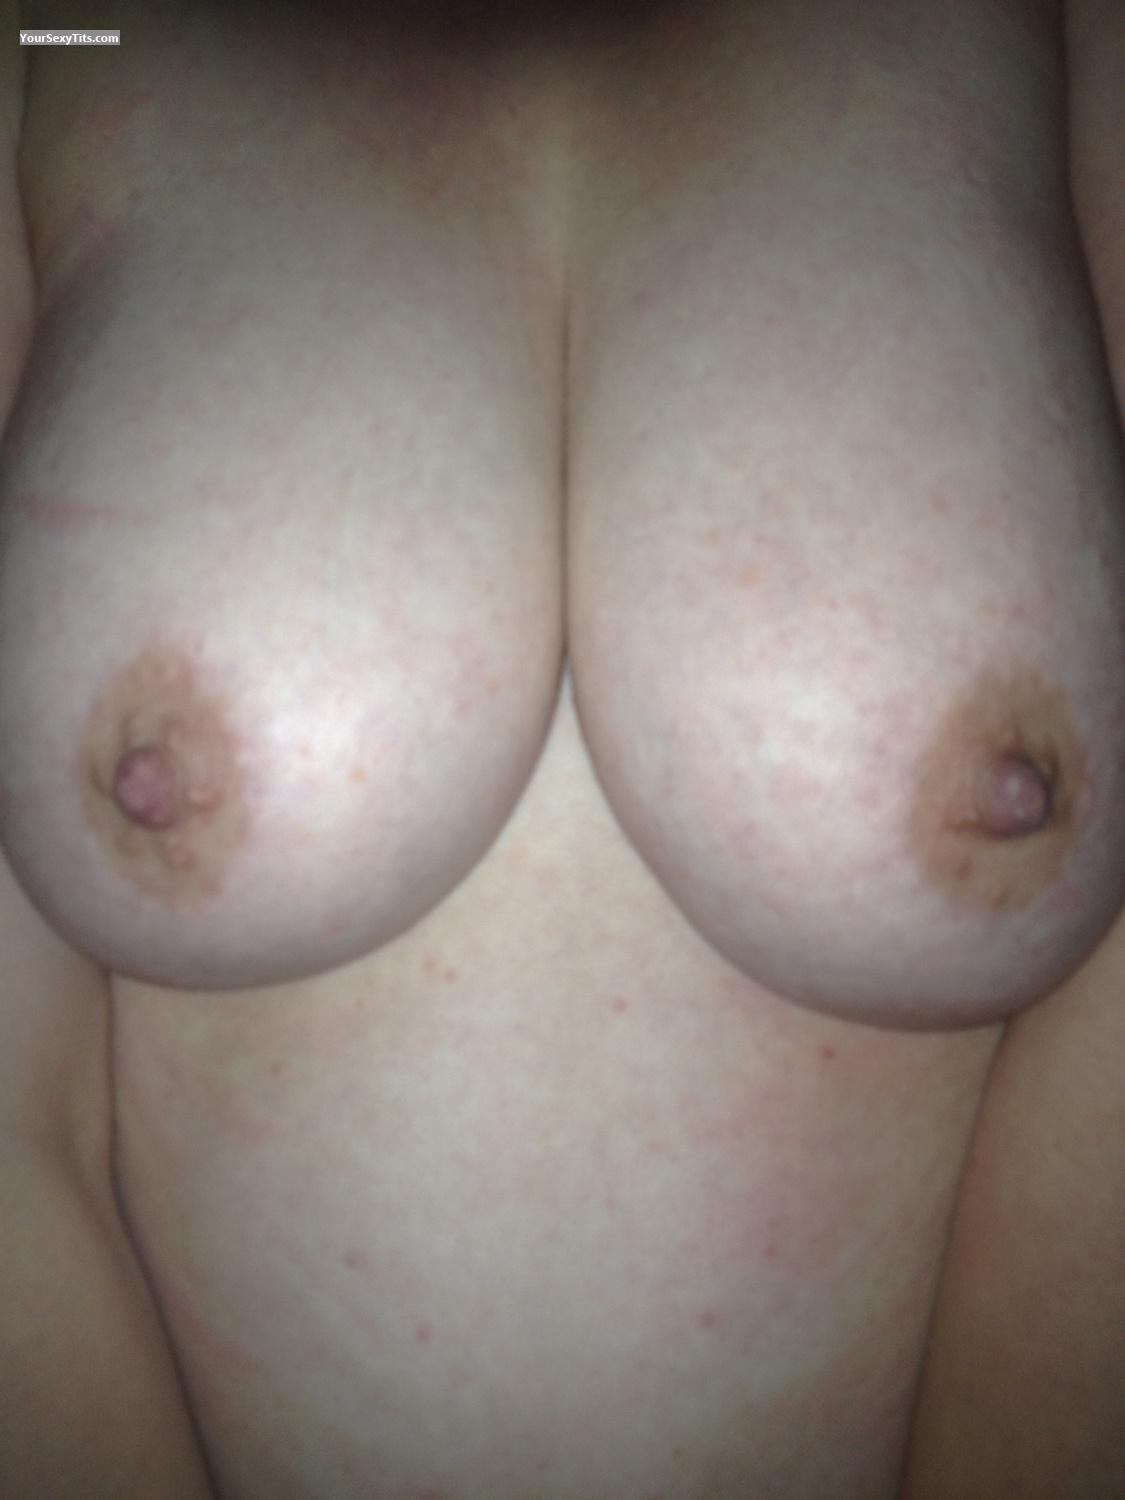 Tit Flash: My Big Tits By IPhone (Selfie) - Jubblies2 from United Kingdom